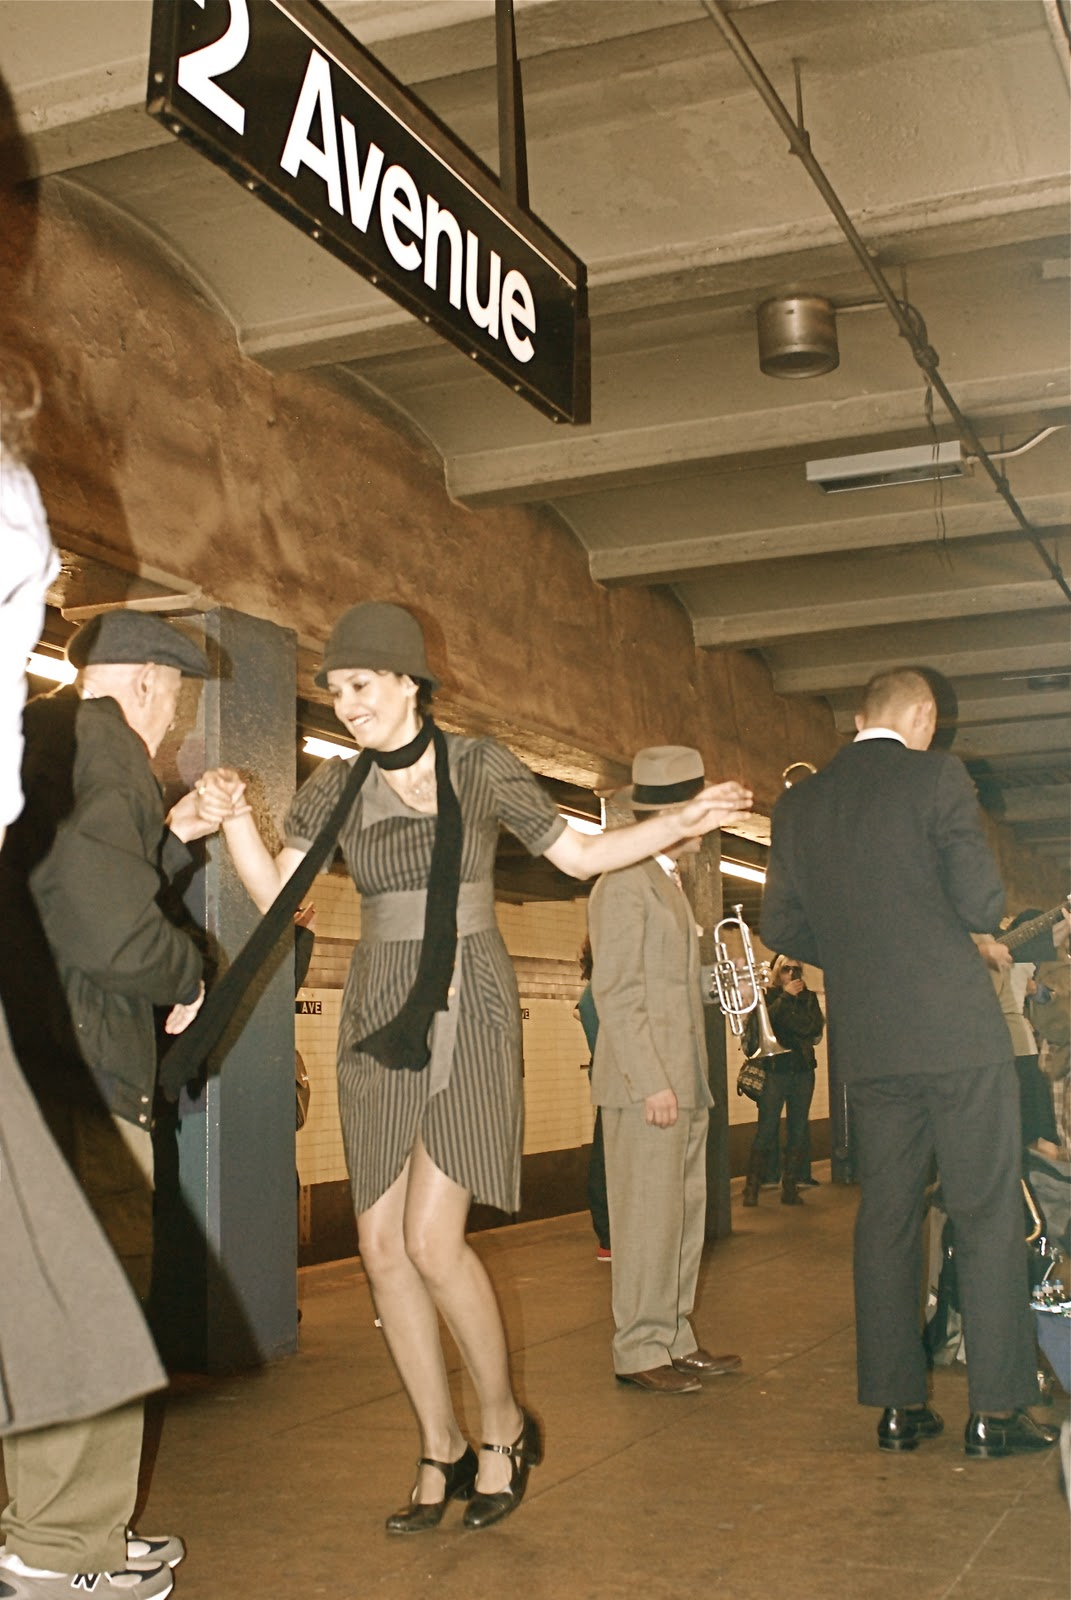 Swing dance club nyc / One cigar a month